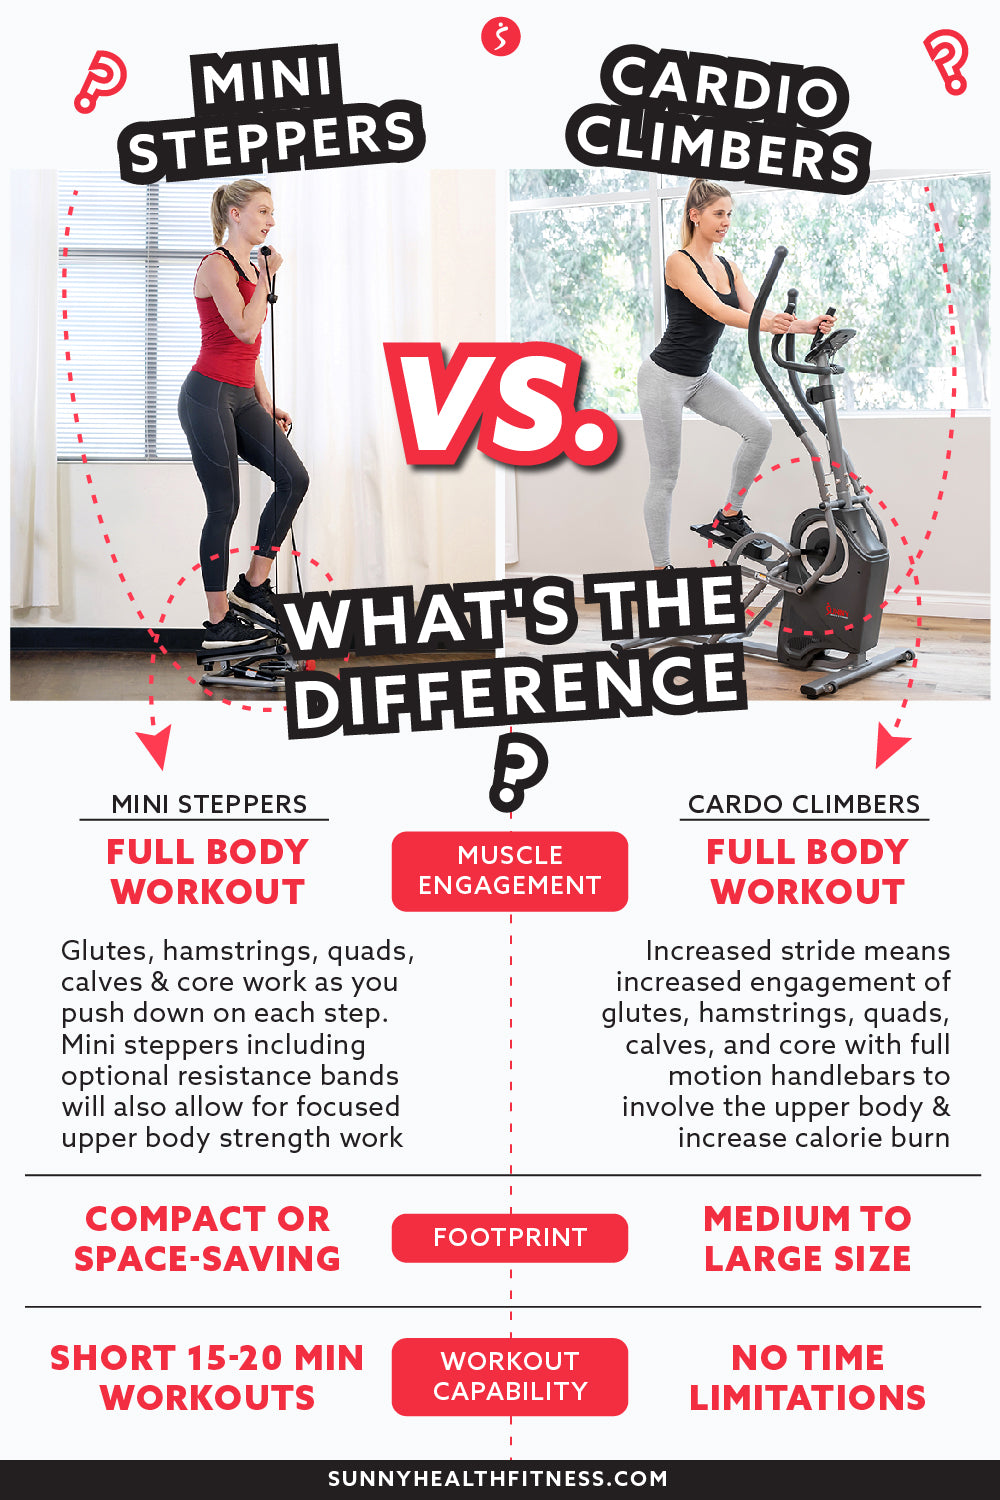 Top Differences Between Mini Stepper and Cardio Climber